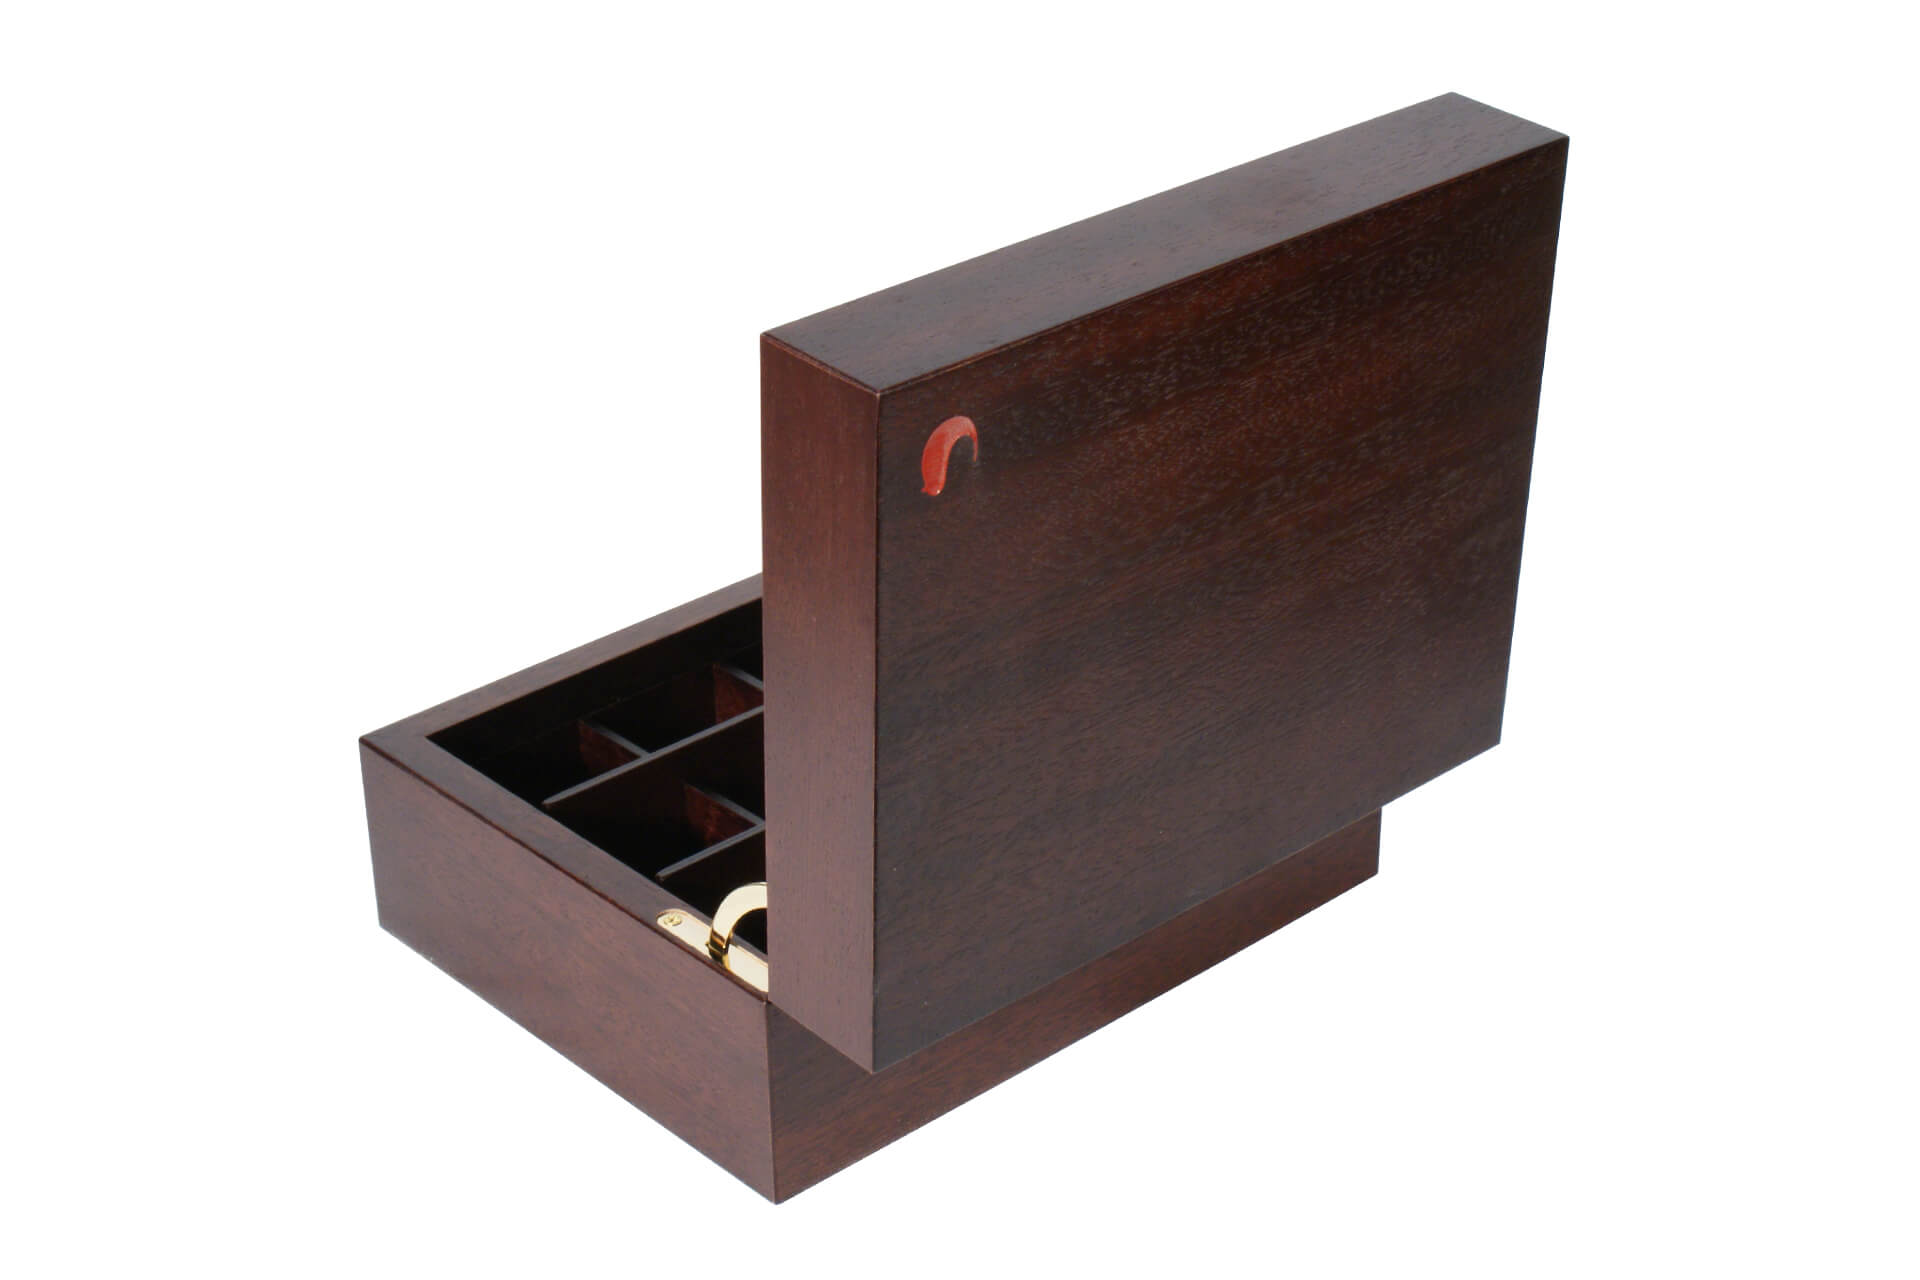 hand made wooden teabox for conference suites and hotels